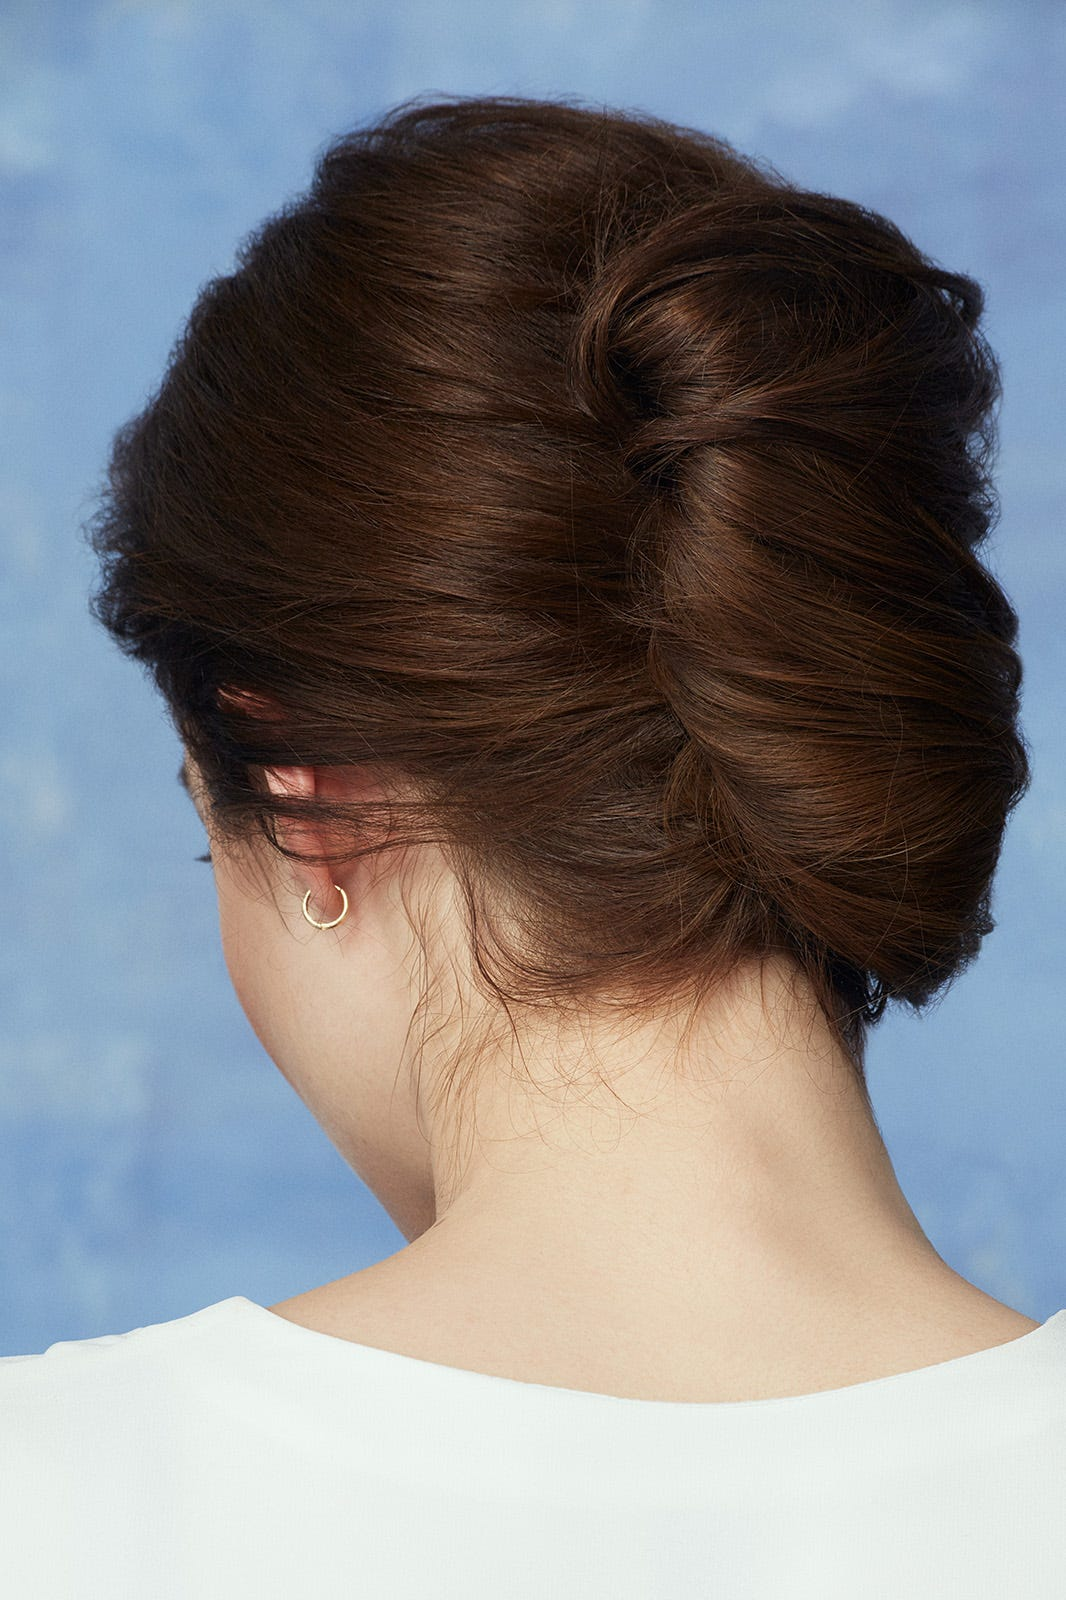 Professional hairstyles at home easy diy hair solutioingenieria Images